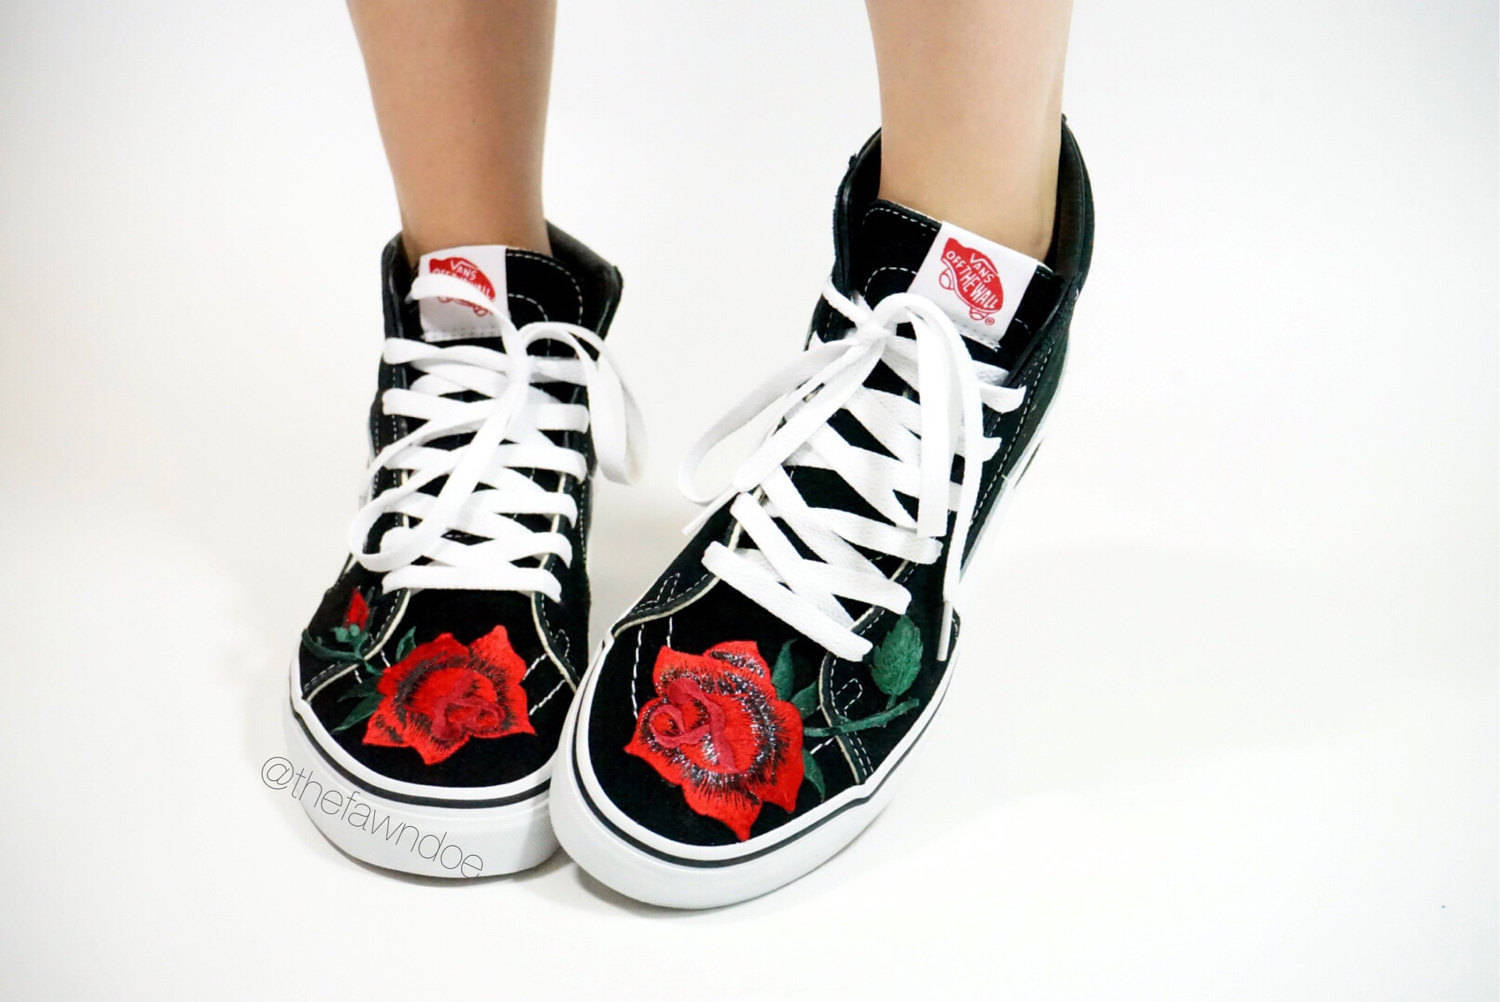 Drawn vans rose Red vans Rose Vans Etsy